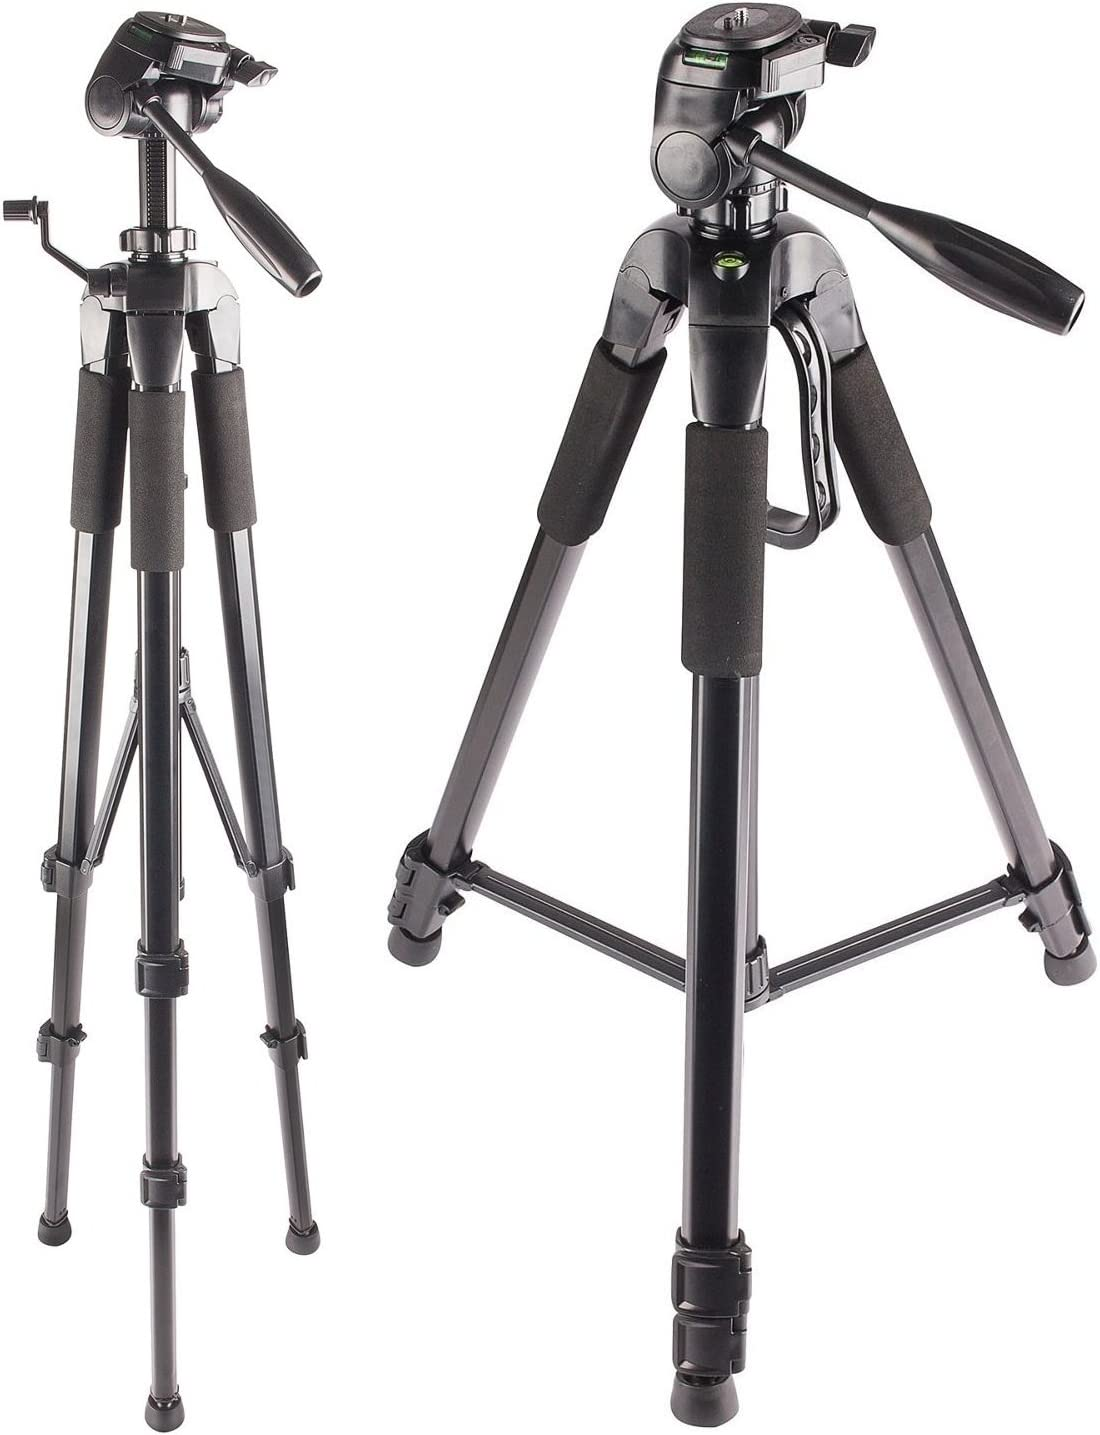 Bubble Level Professional Dual Handle Aluminum 67 Tripod for Sony NEX-VG900